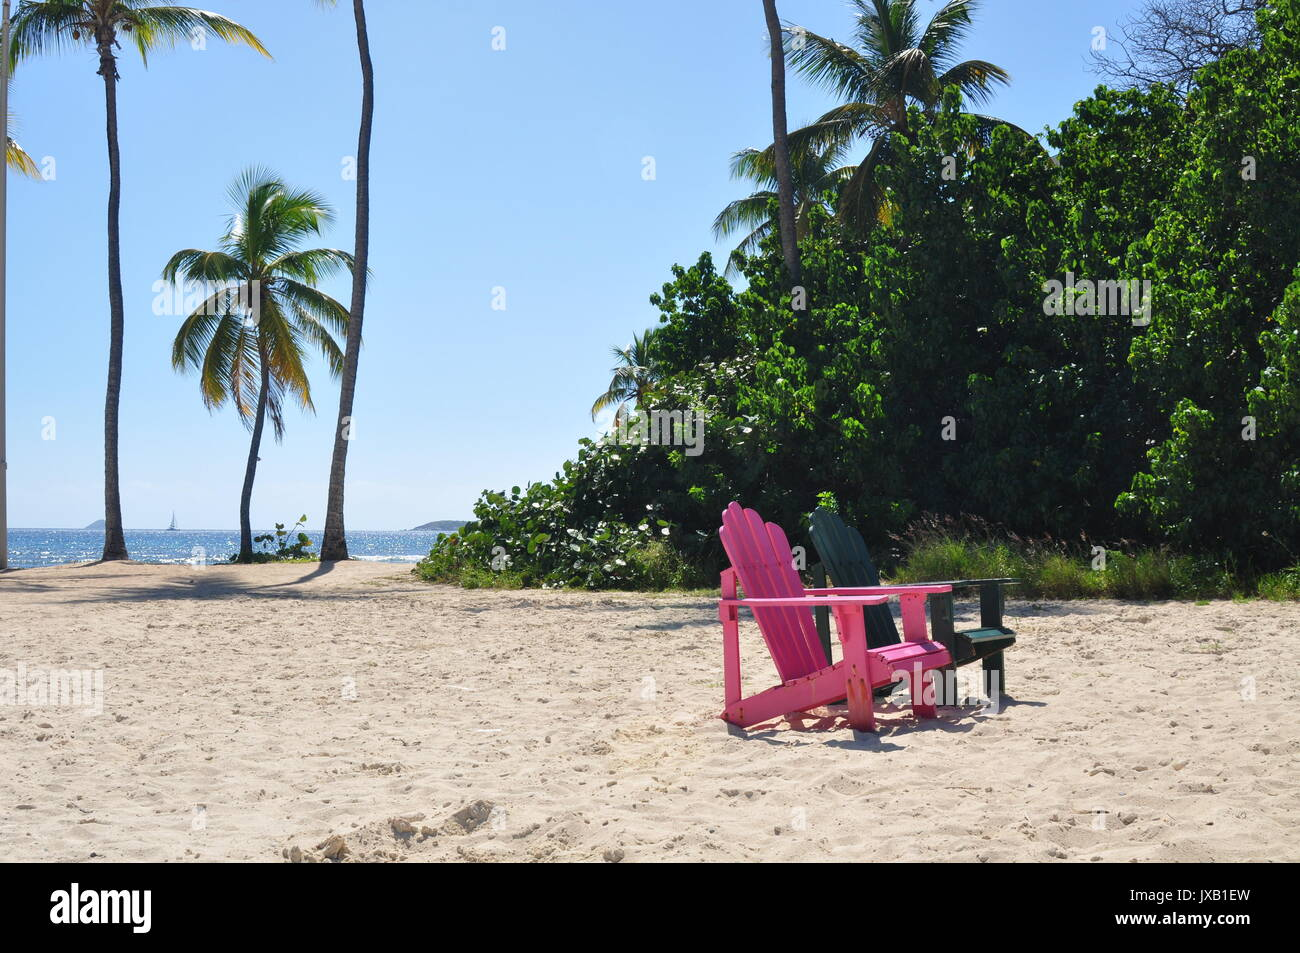 Pink And Green Adirondack Chairs On The Beach In St. Thomas, US VI